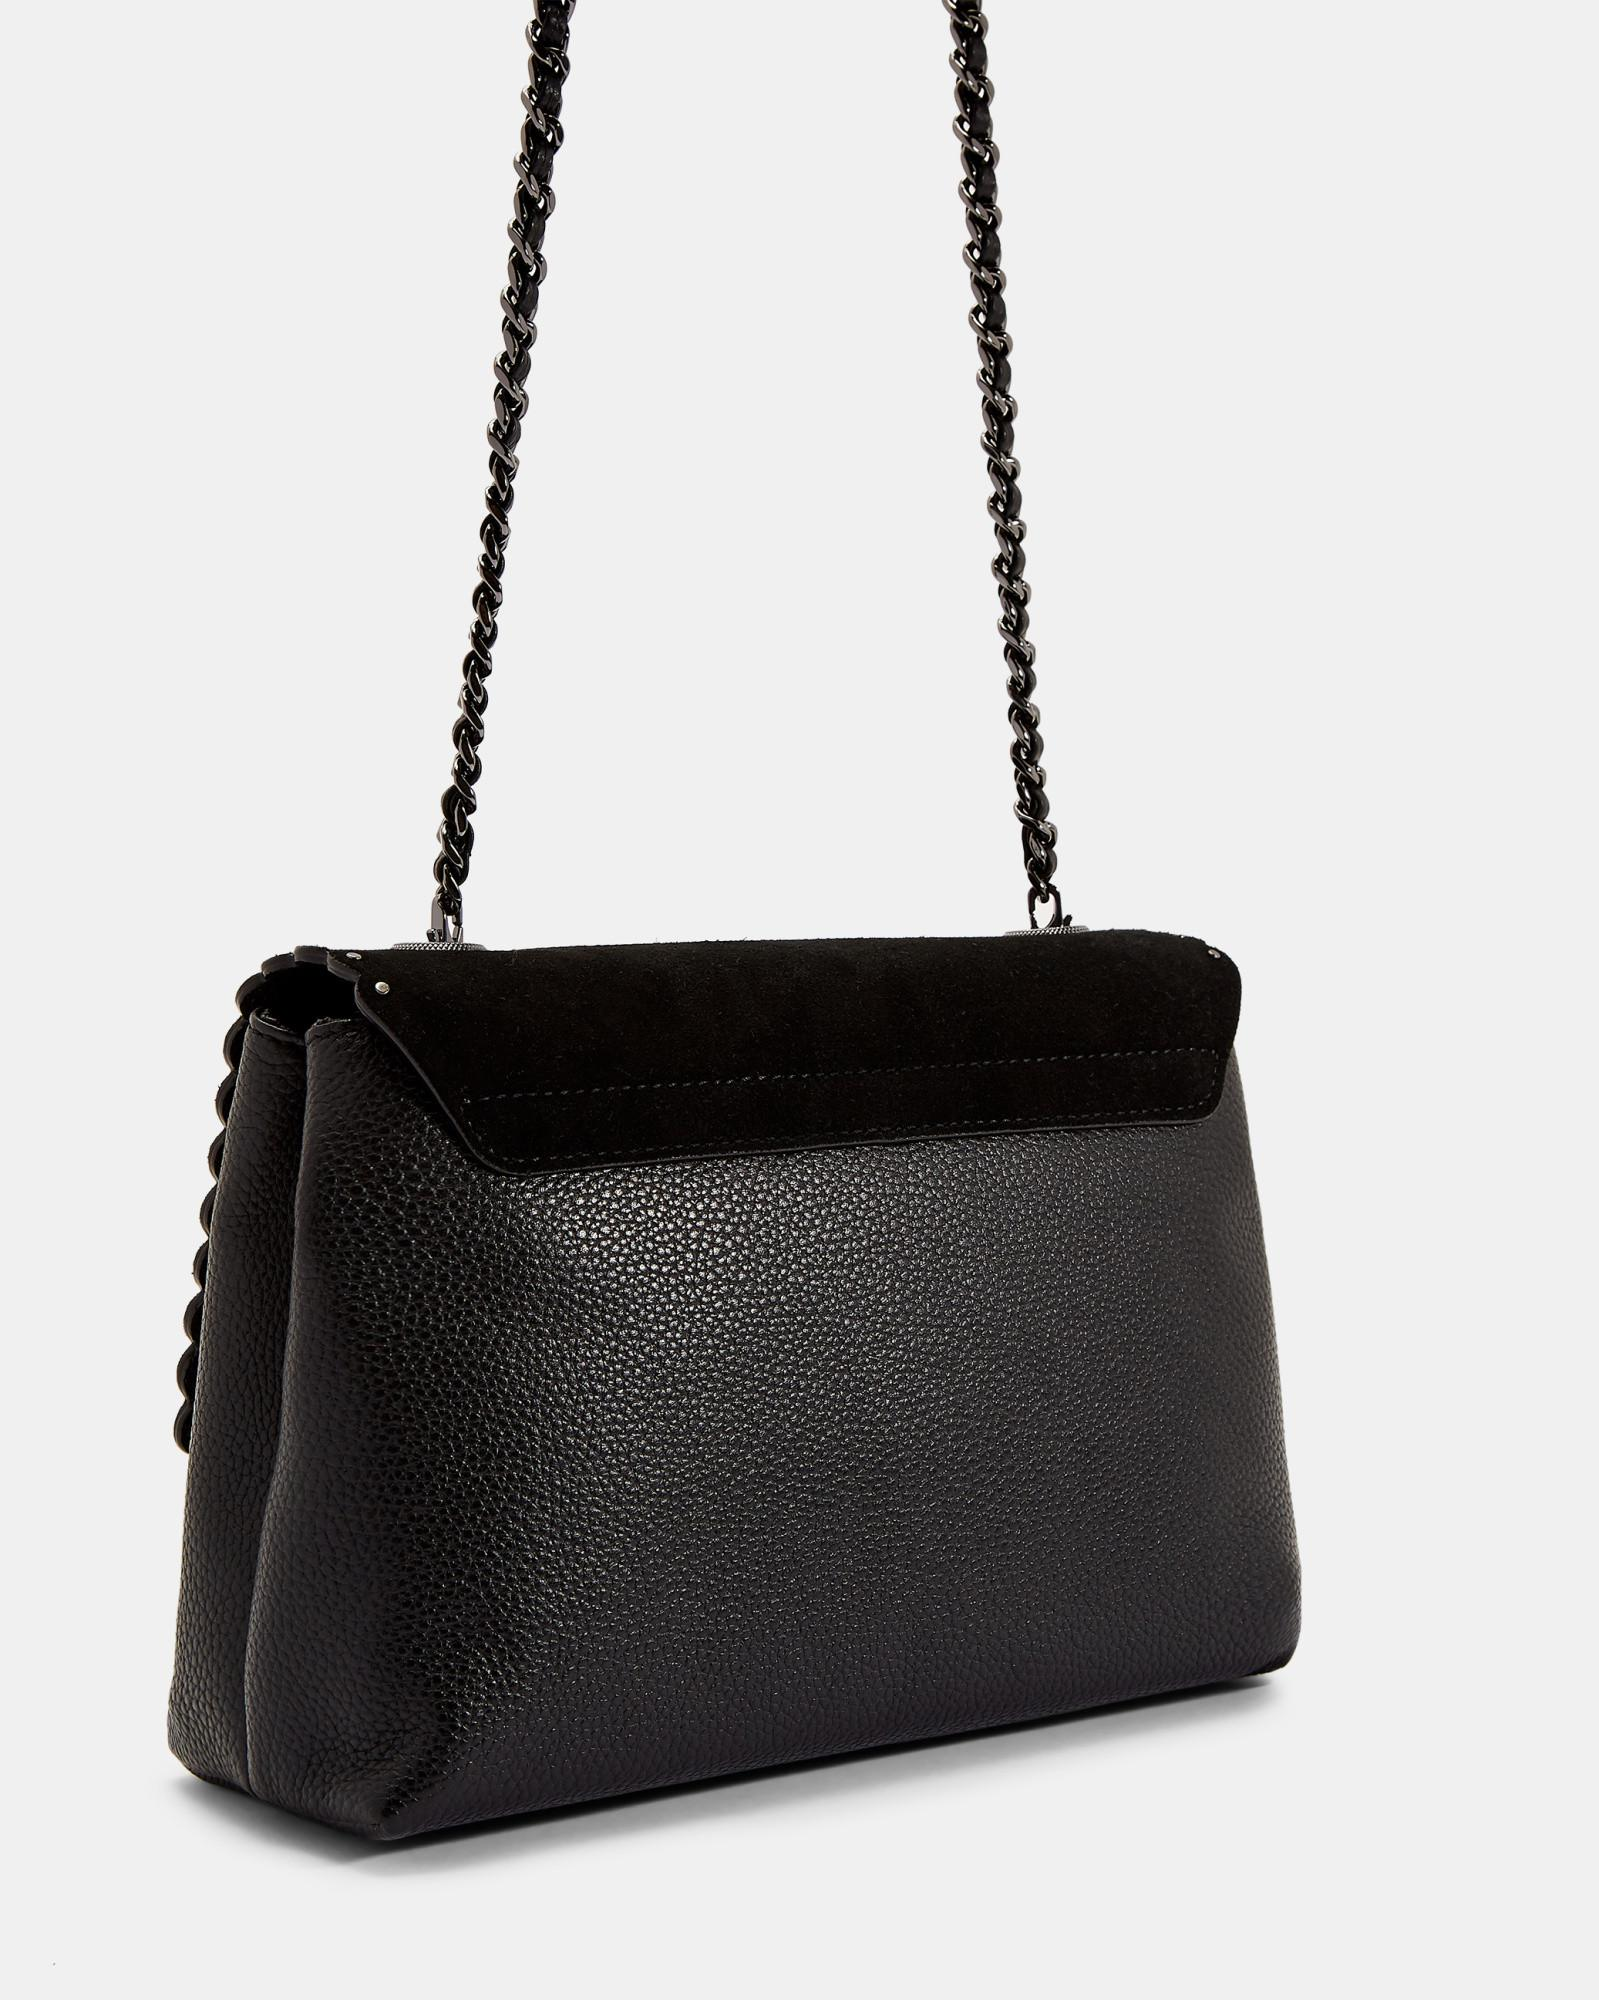 32b67f4de Lyst - Ted Baker Studded Circle Lock Leather And Suede Bag in Black